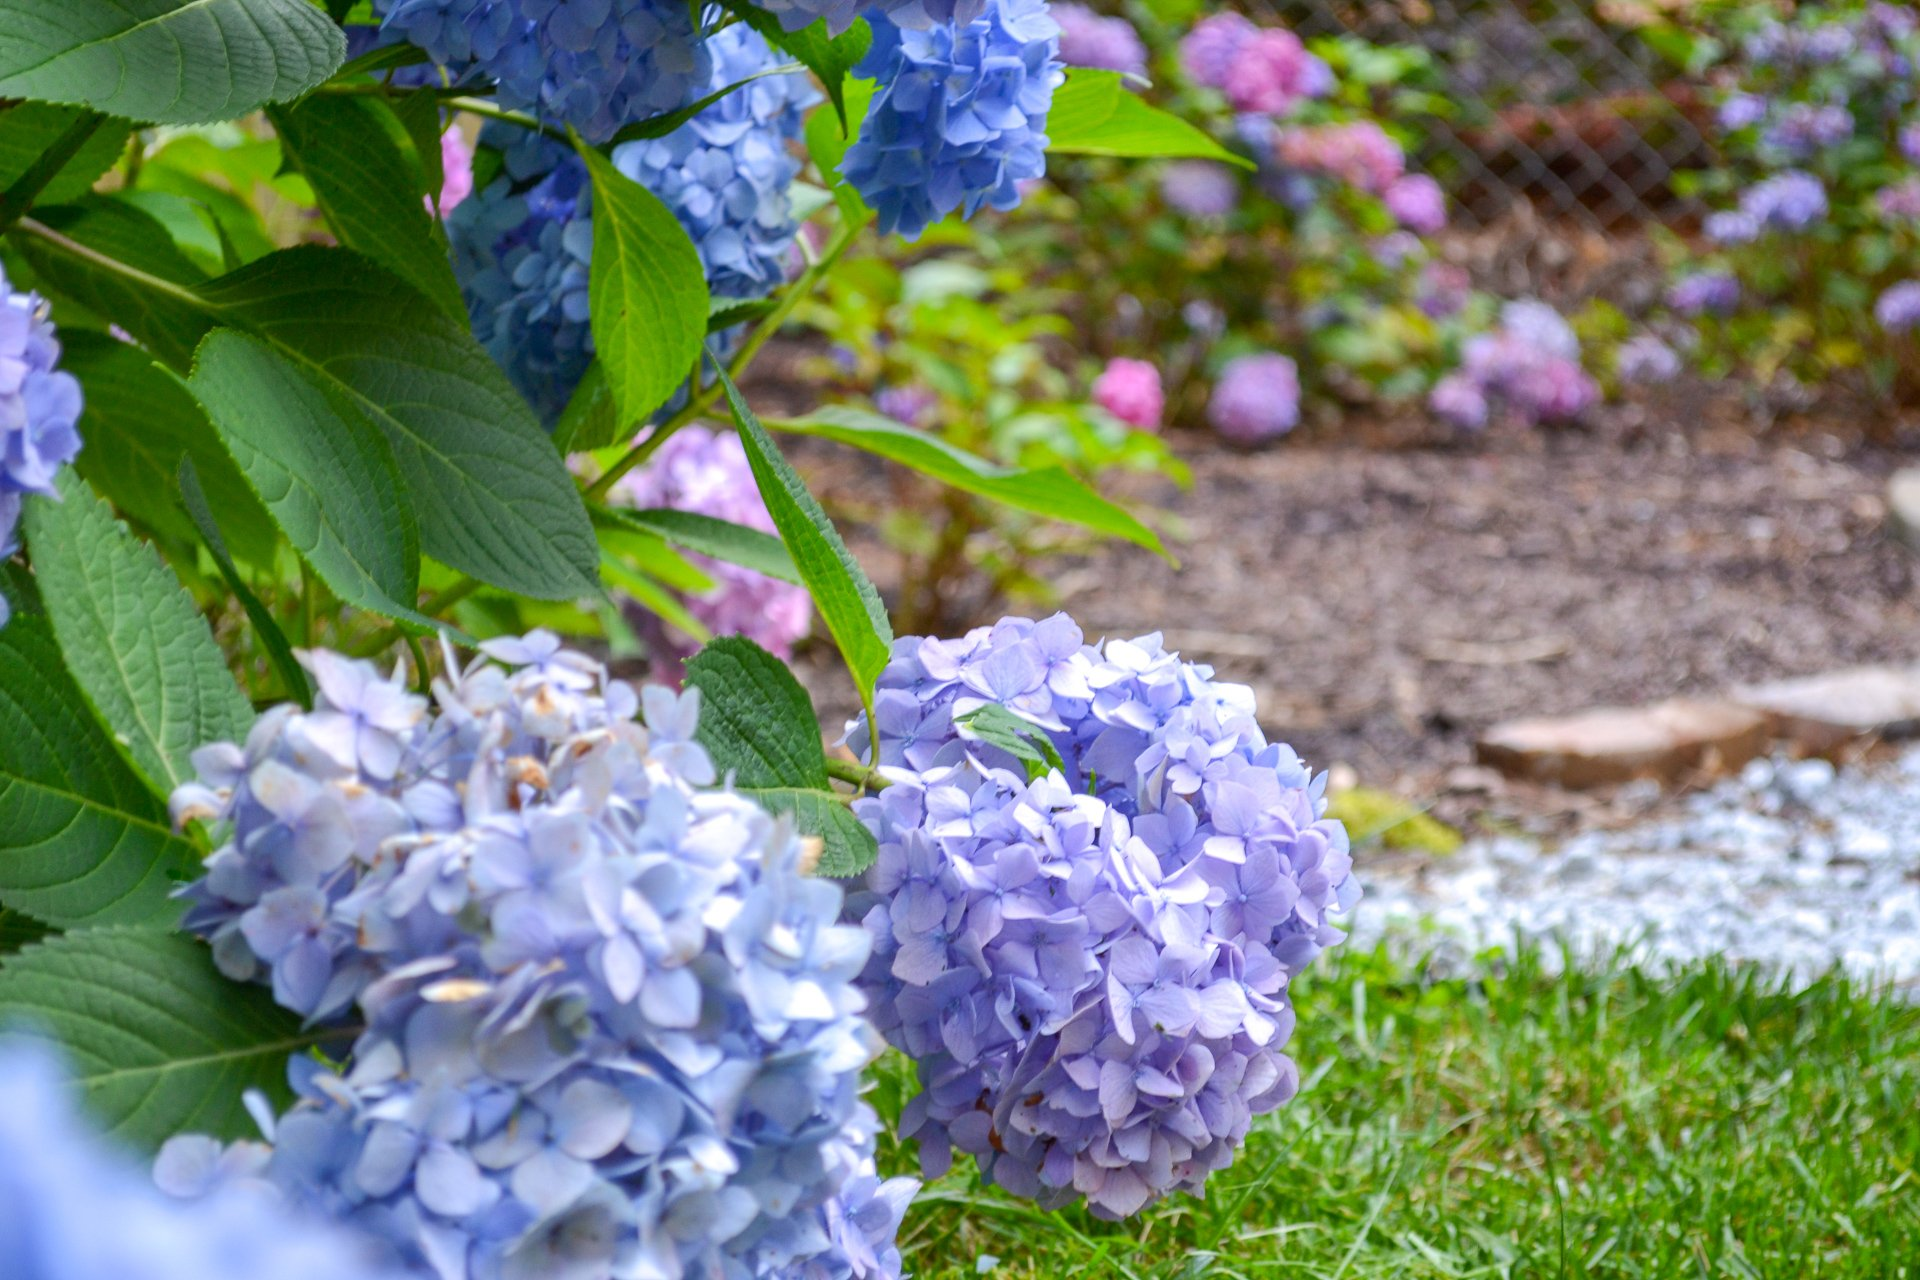 blue hydrangeas growing next to bloomstruck variety